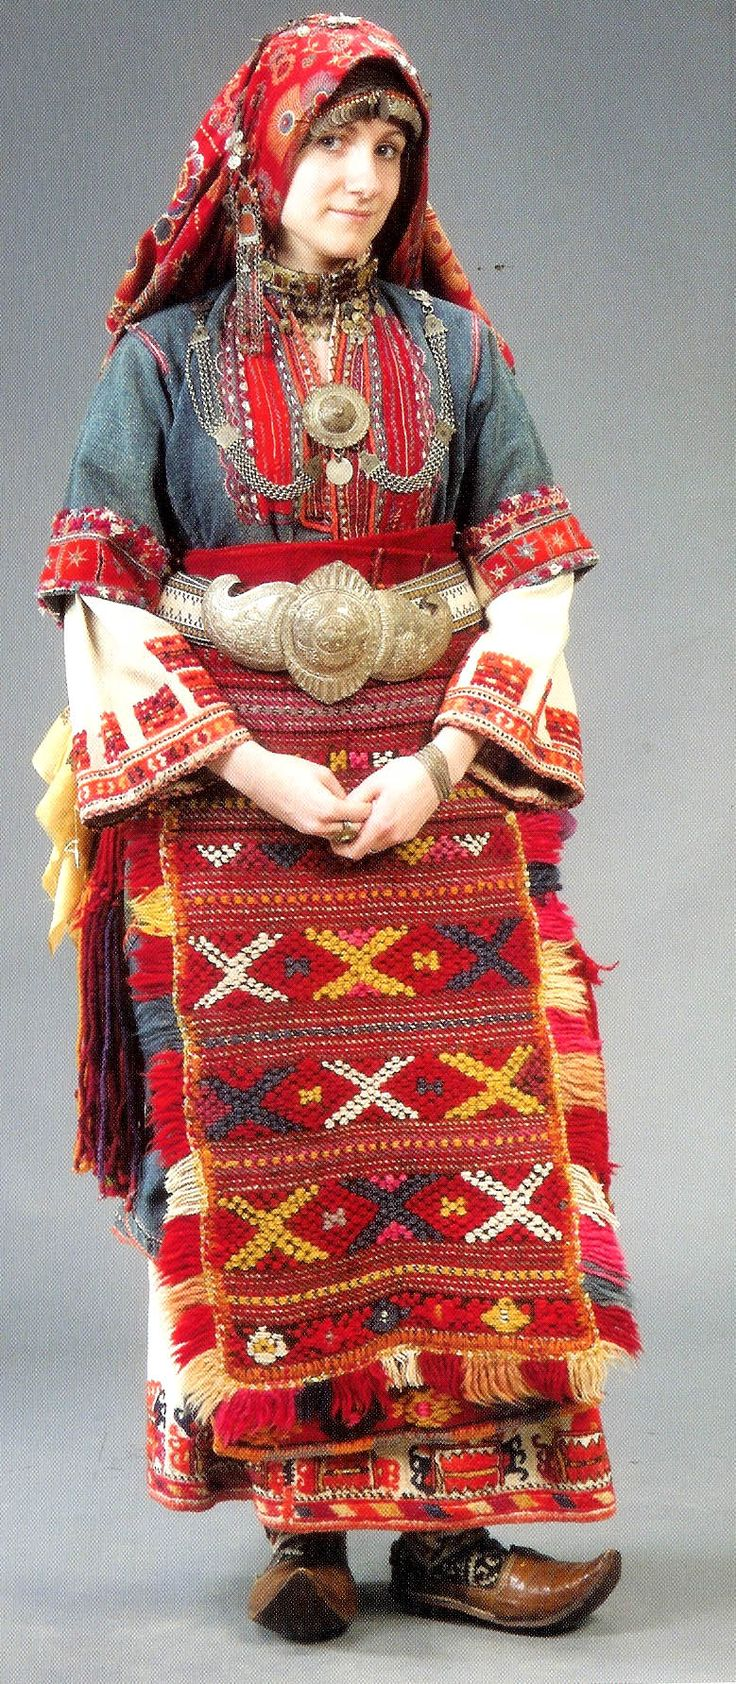 Traditional bridal/festive costume from the Pirin Sandanski area (Bulgarian Macedonia). 19th century & first half of the 20th century. Many features of this costume are similar to the traditional bridal outfit of Türkmen villages in northeast-Anatolia.